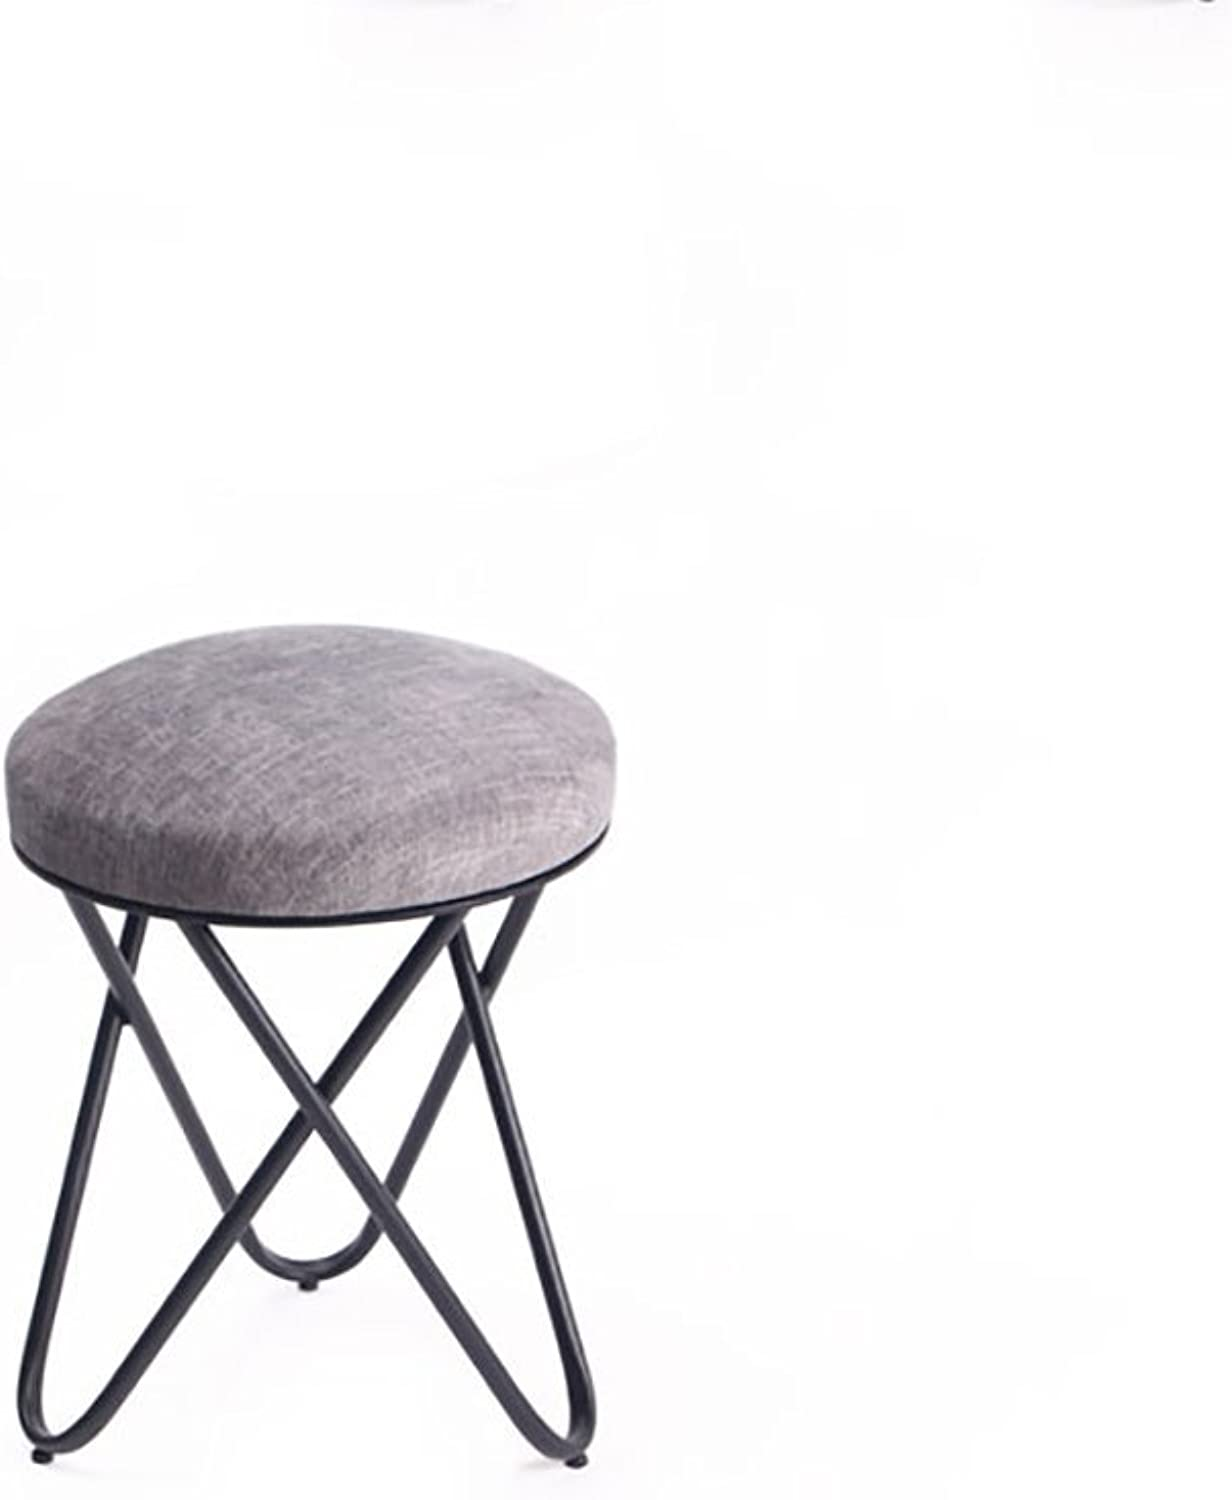 YUHUS HOME HOME HOME American makeup stool creative simple stool fabric sofa shoes stool iron dressing stool  small stool (color   F) 9f9c21